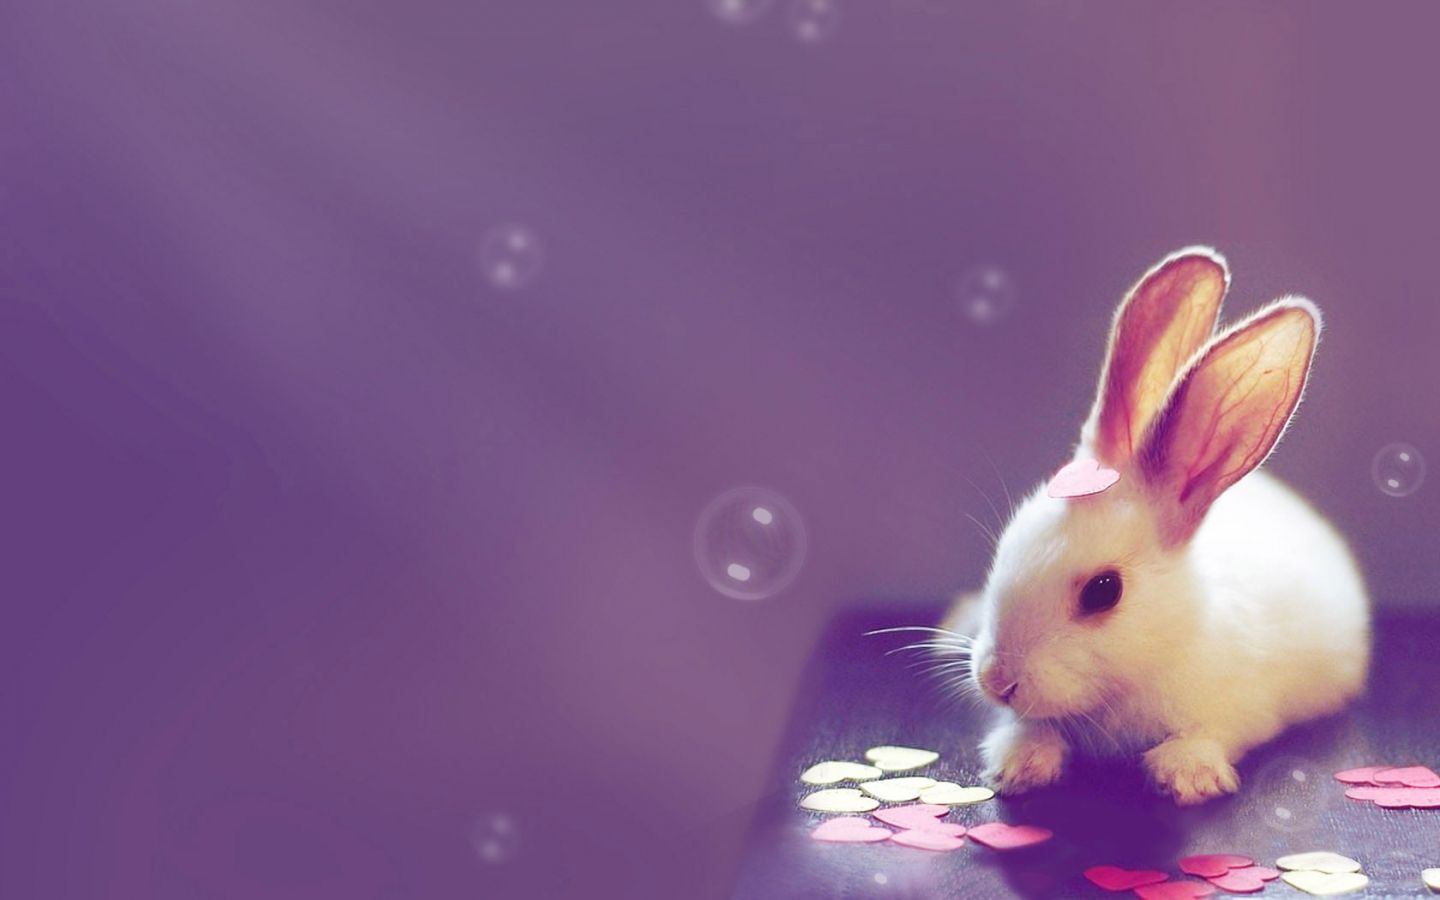 Cute Backgrounds For Desktop - Wallpaper Cave